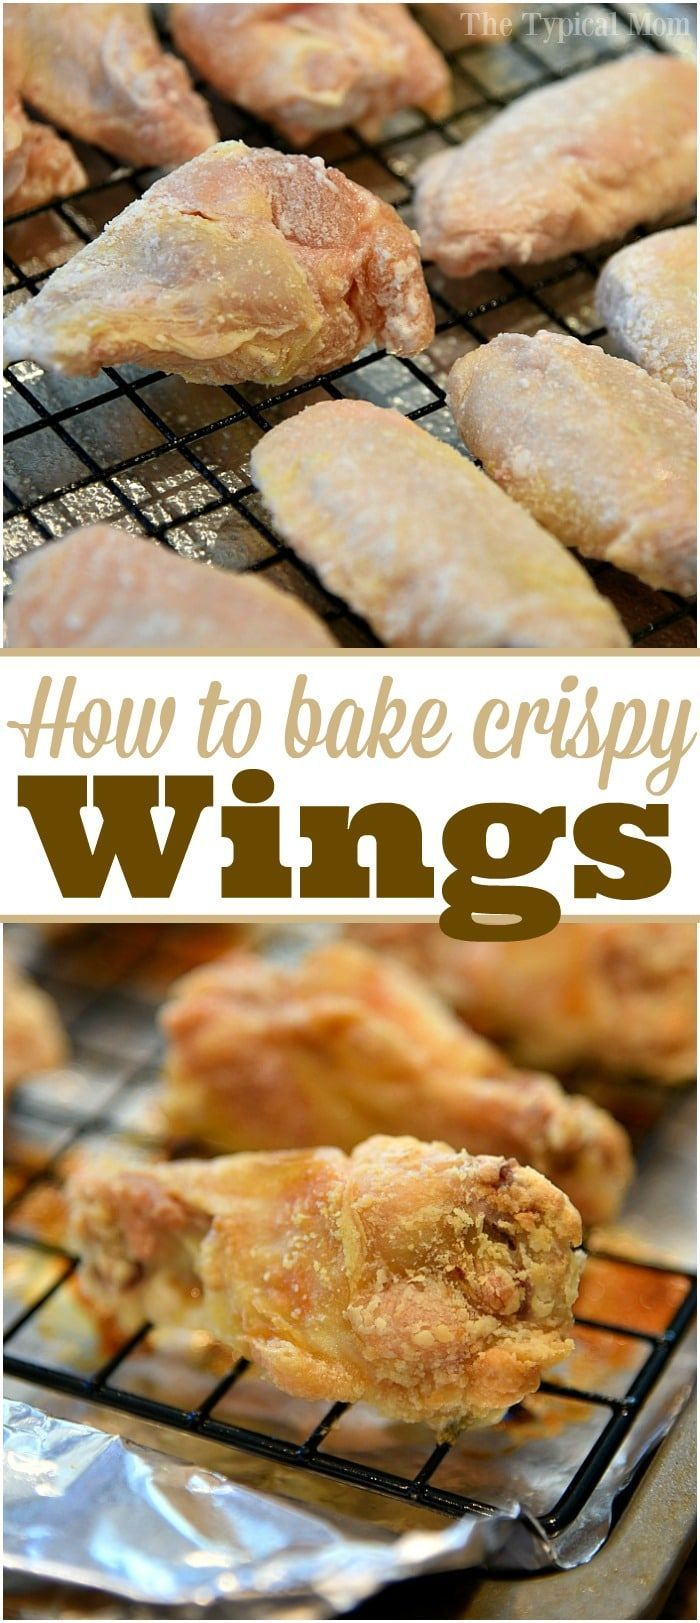 How to bake crispy chicken wings in the oven! We make these all the time now that they come out crunchy and crispy like this! AD via @thetypicalmom